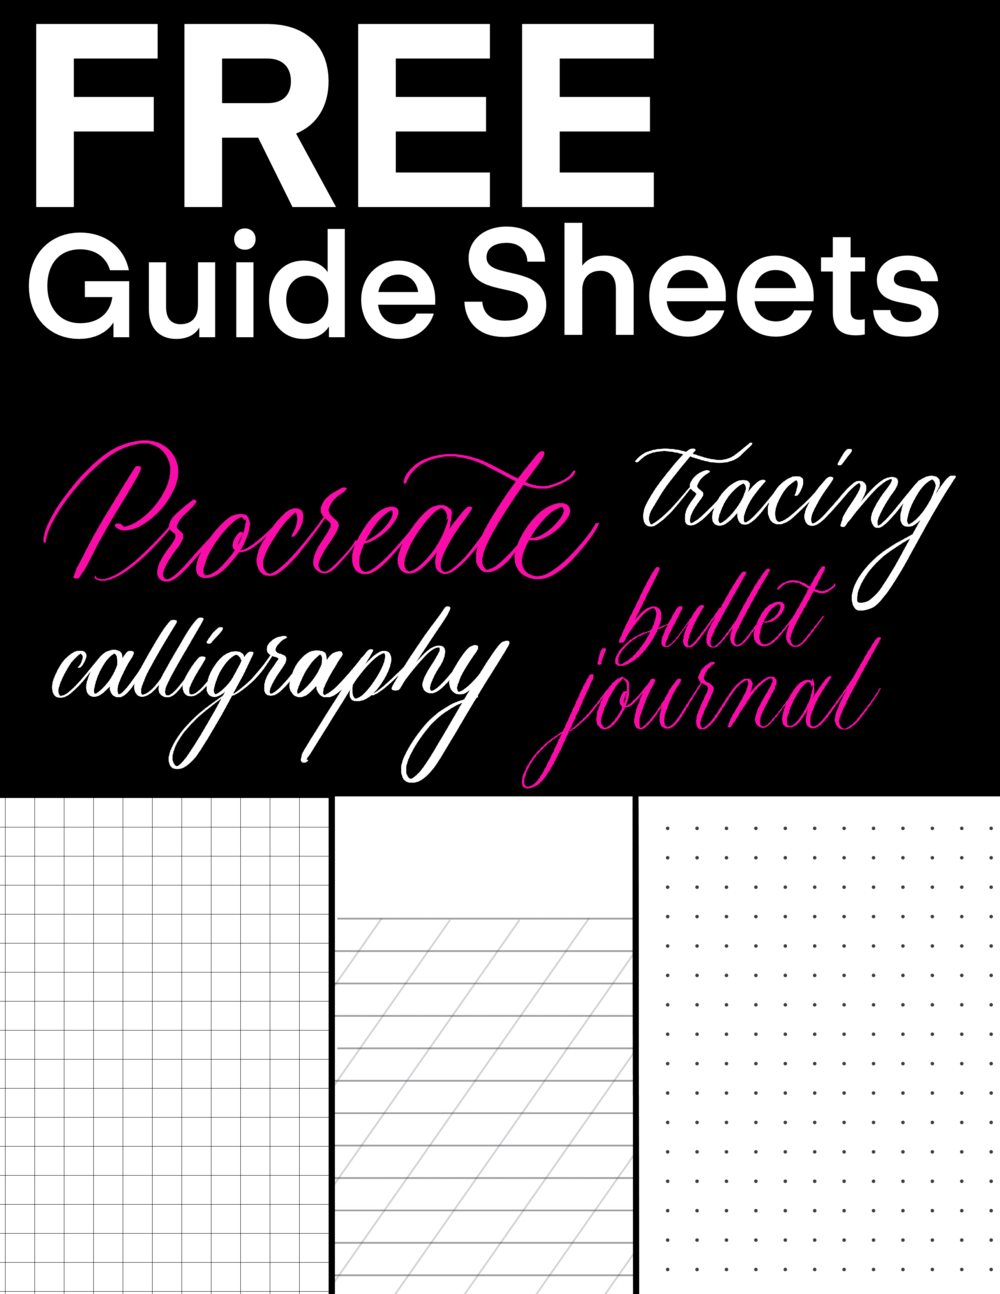 Missy Briggs Lettering guide, Calligraphy lessons, Lettering